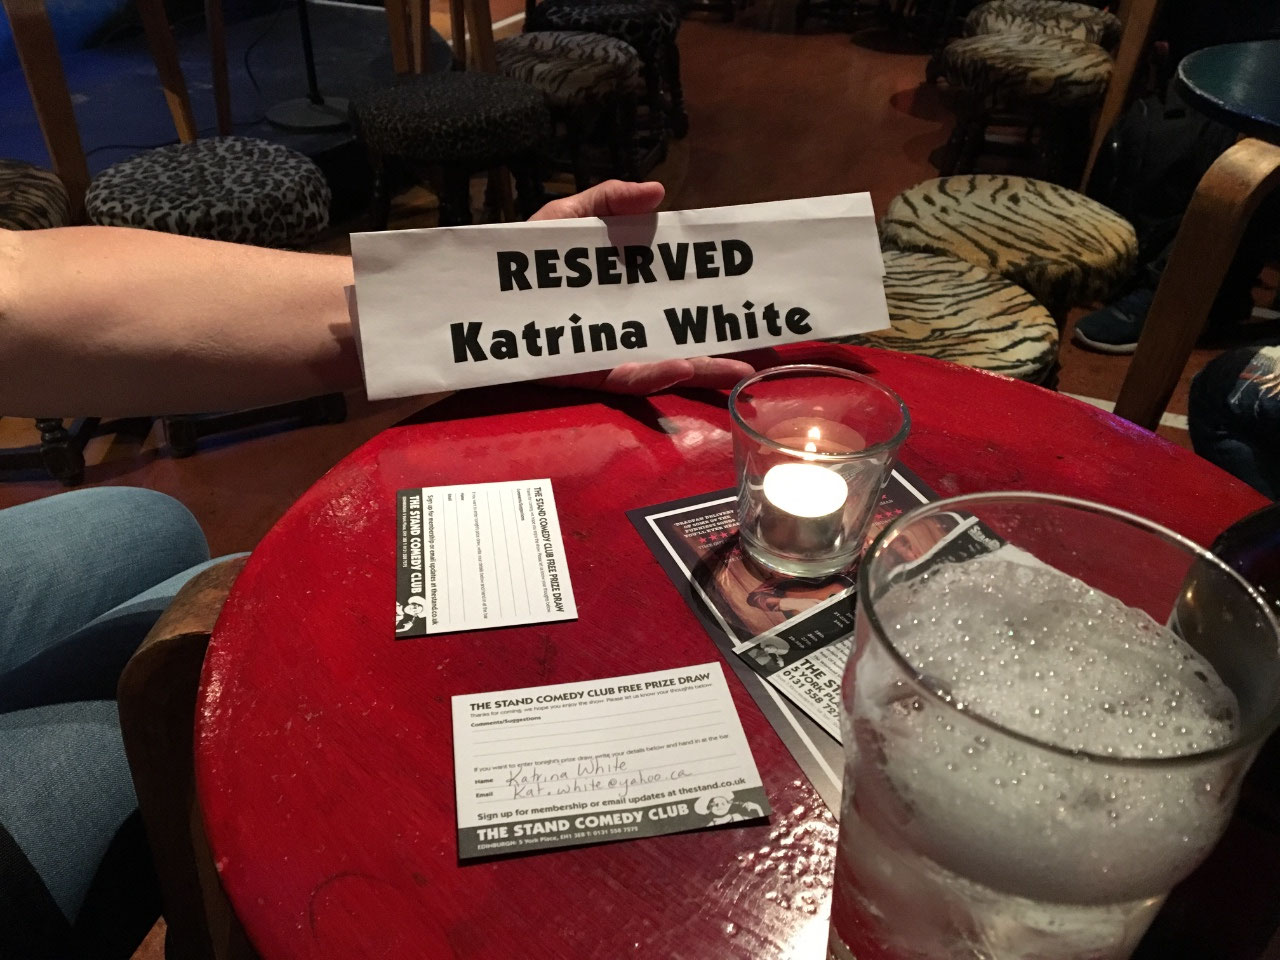 A reserved table at the Stand